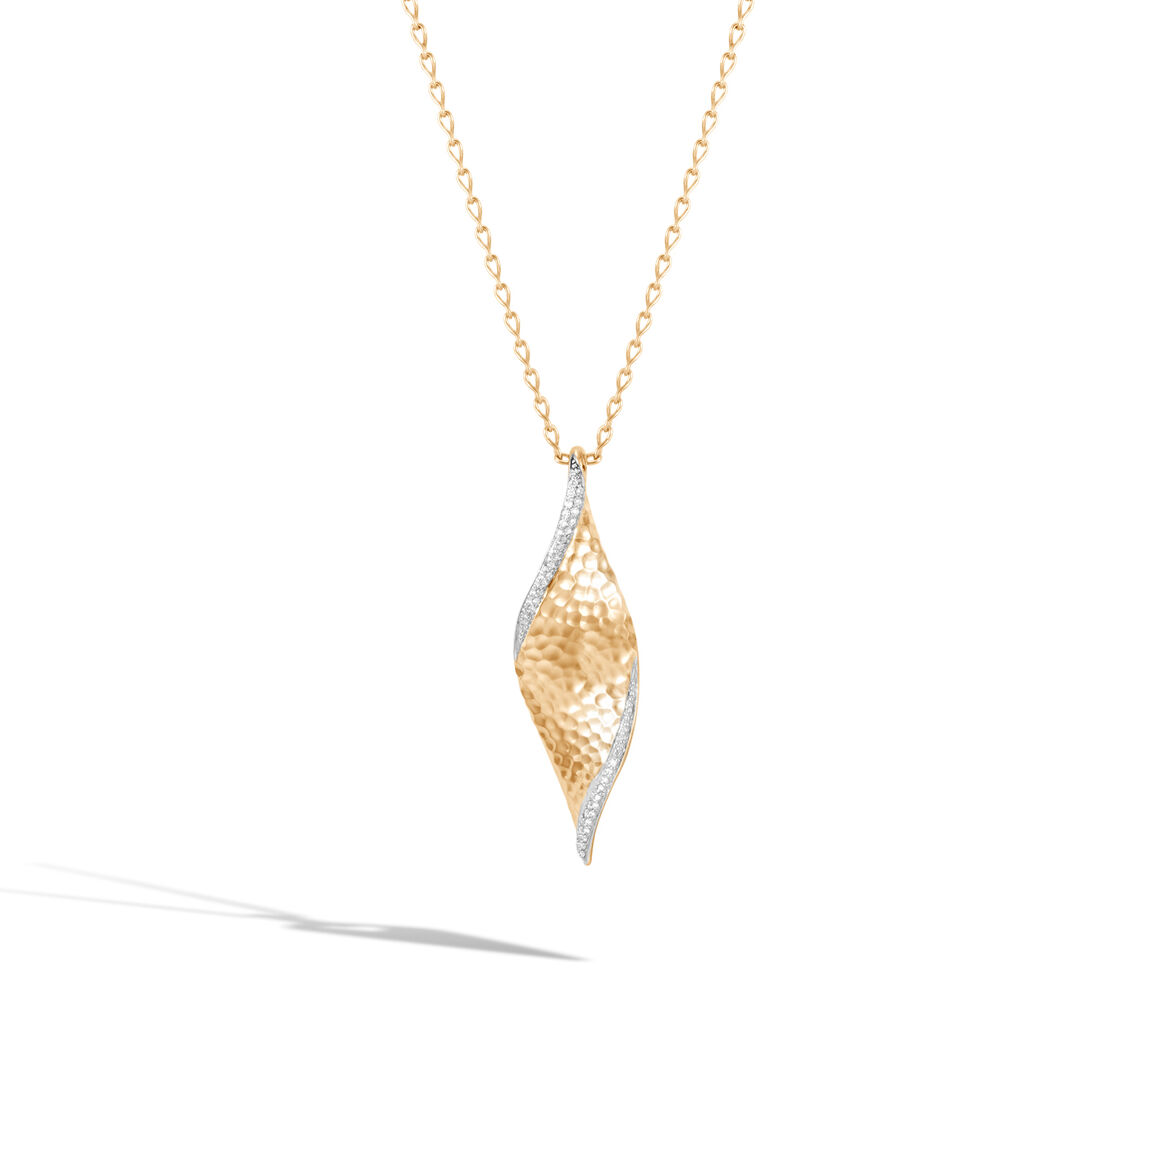 Classic Chain Wave Pendant Necklace, Hammered 18K, Diamonds